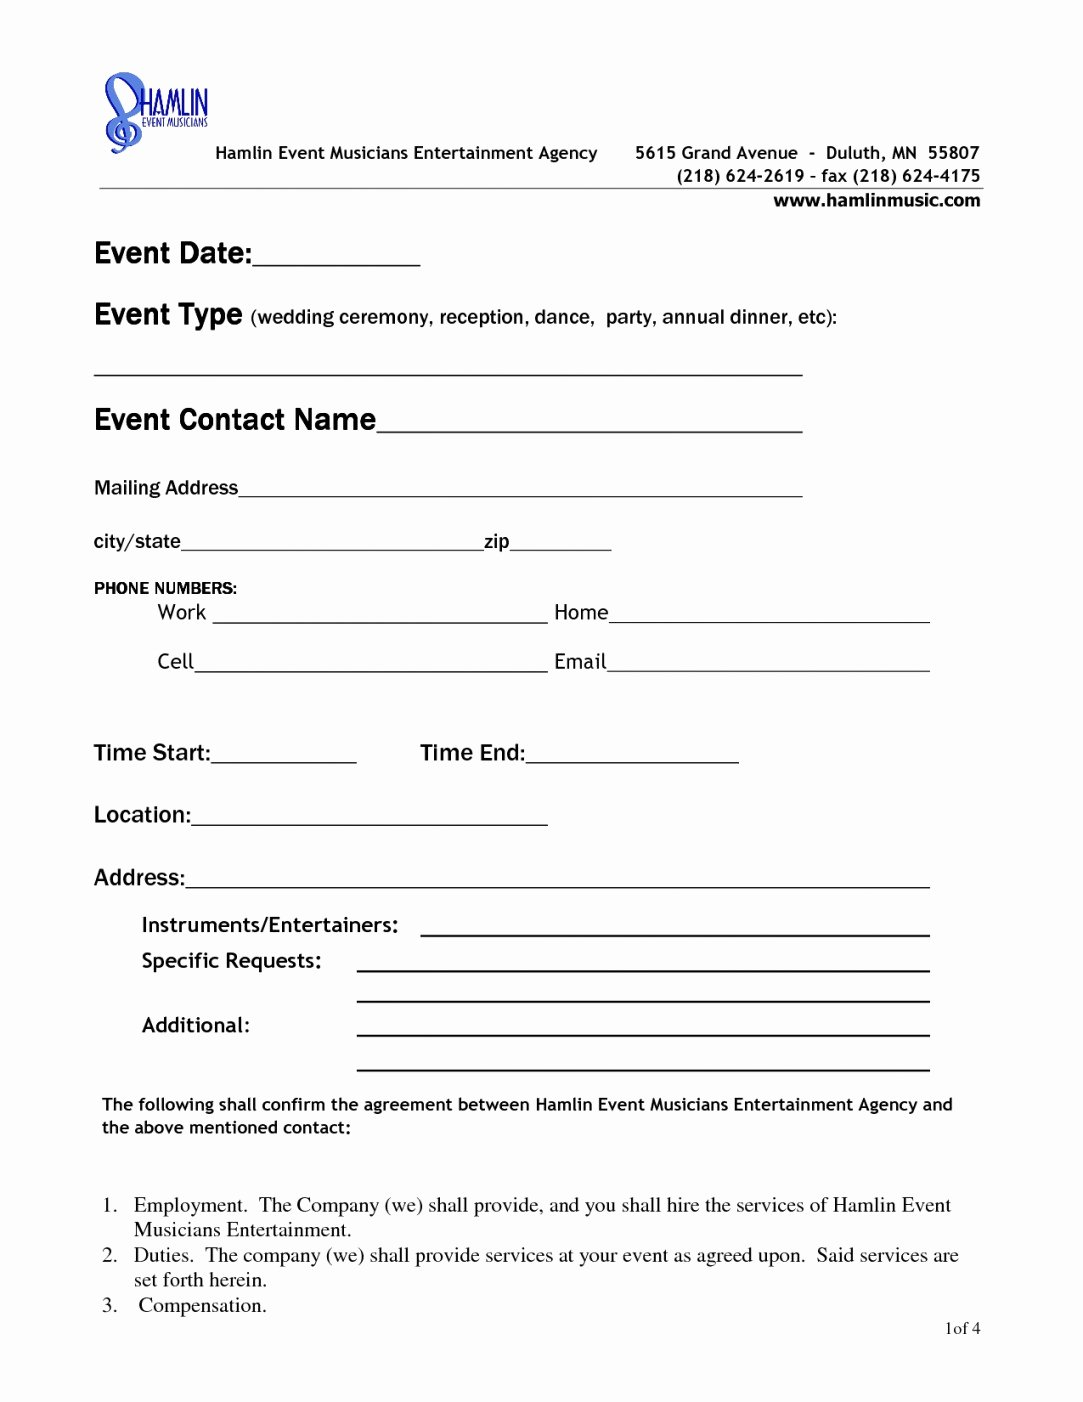 Venue Rental Agreement Template New event Space Rental Agreement Template